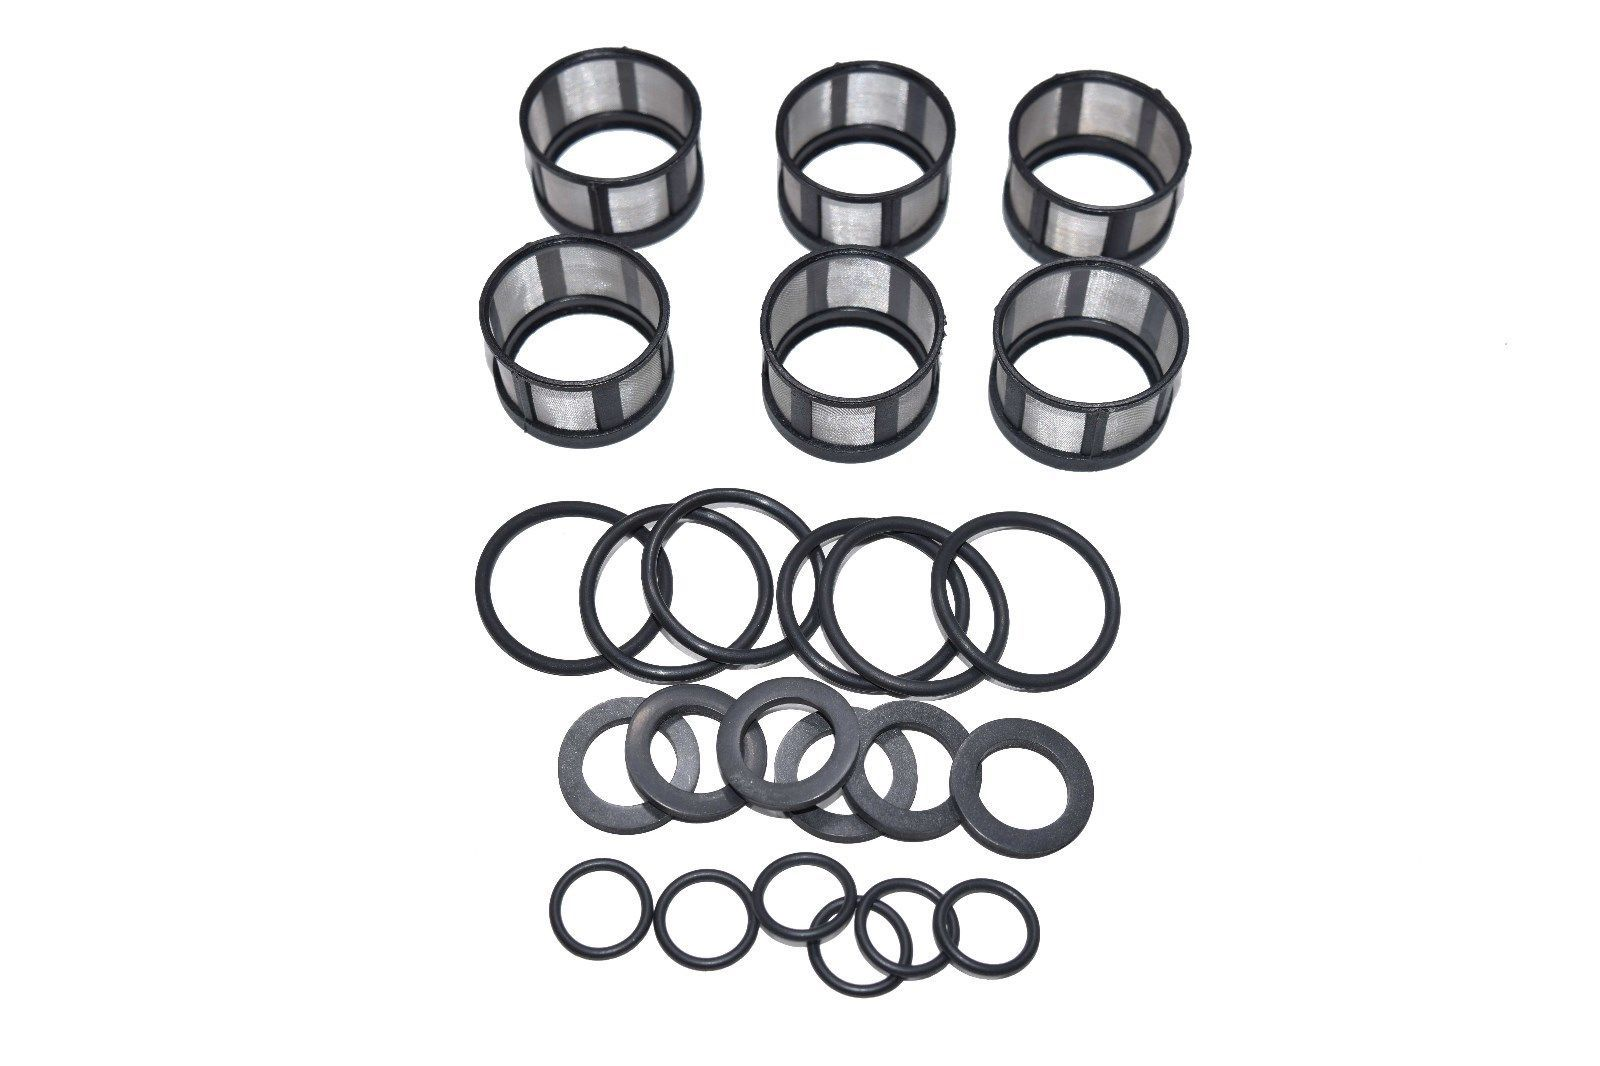 Fuel Injector Rebuild Kit O Rings Filters And 50 Similar Items 1988 Nissan D21 Pickup Filter 57